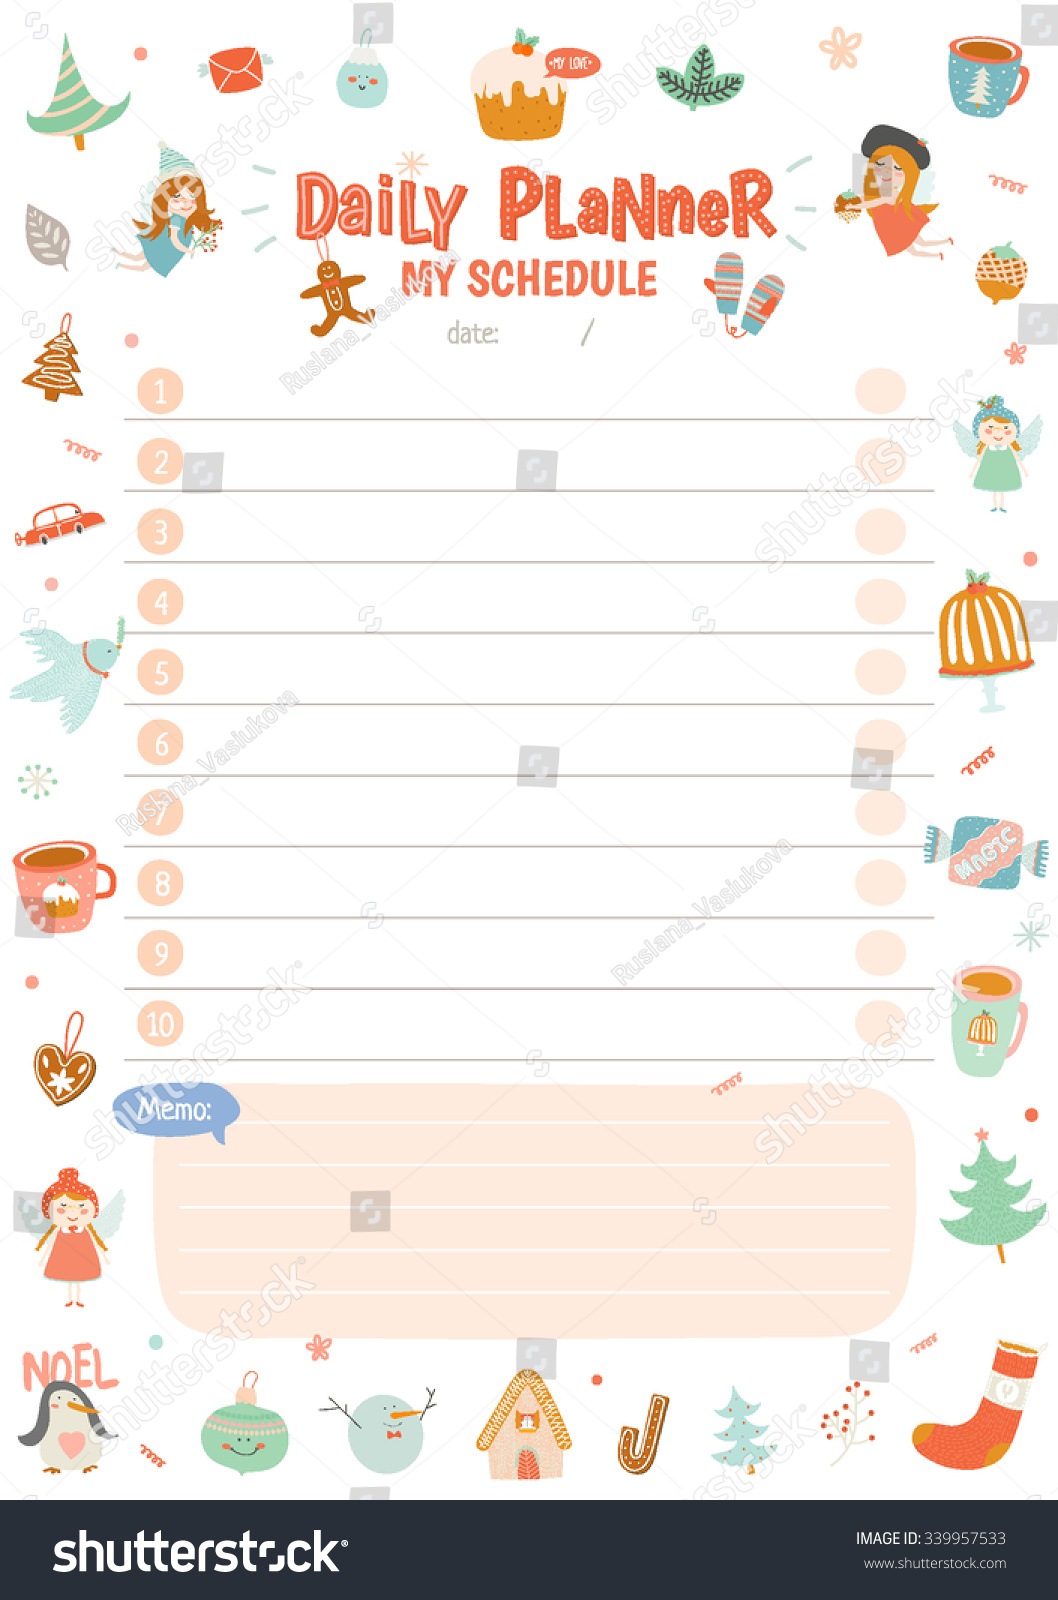 Weekly Calendar Wallpaper : Cute calendar weekly planner template stock vector